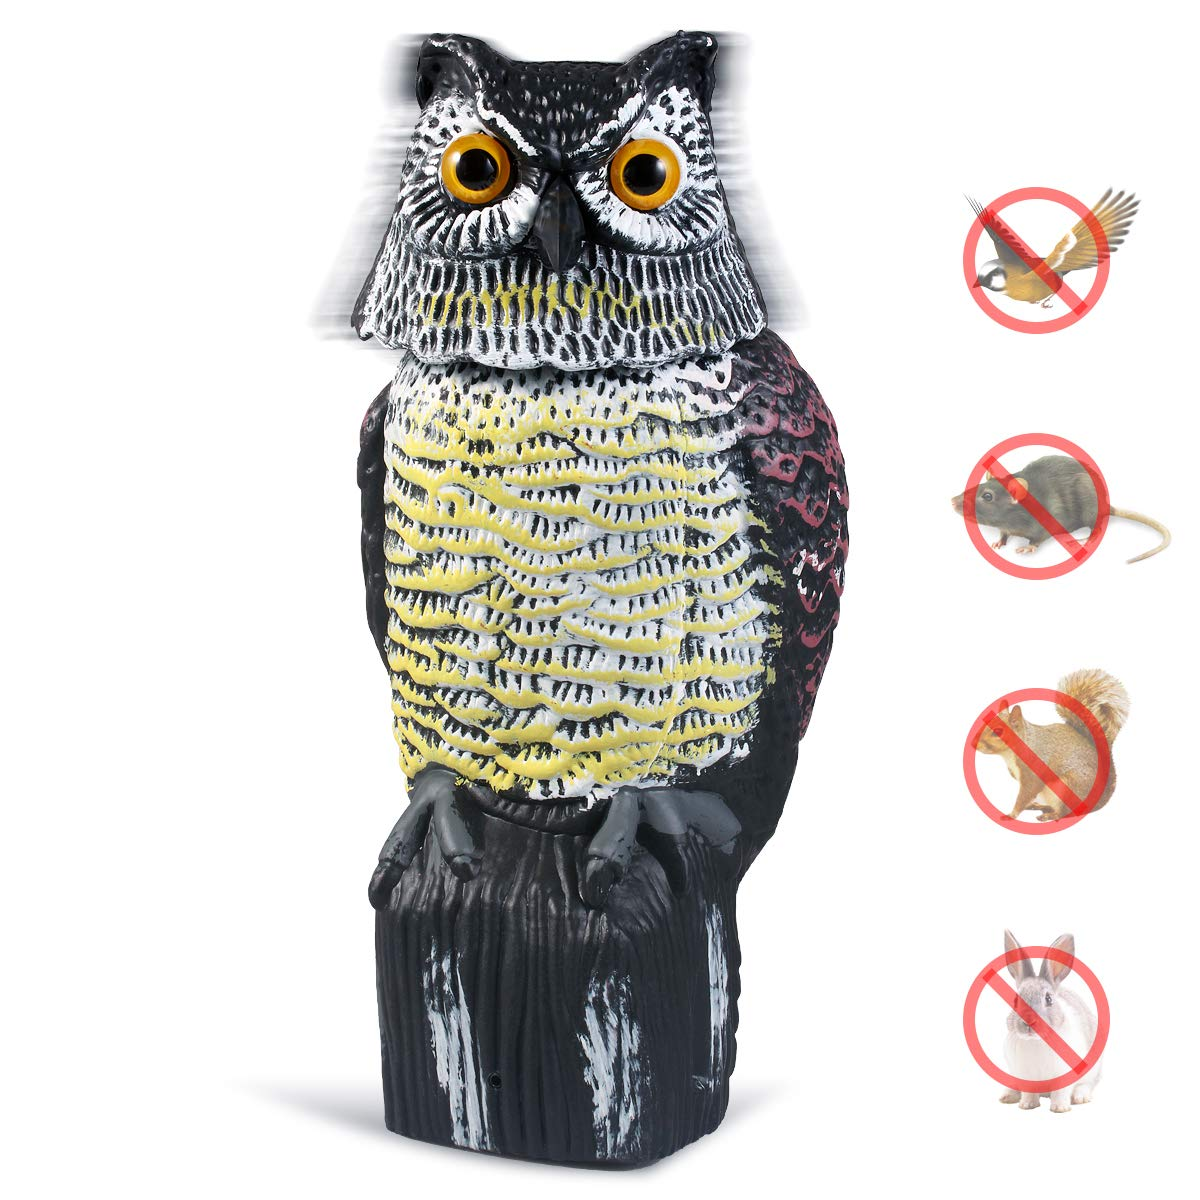 CampFENSE Owl Decoy with Rotating Head, Garden Protector Sculpture for Birds, Mice, Squirrels, Rabbits (Black-New)